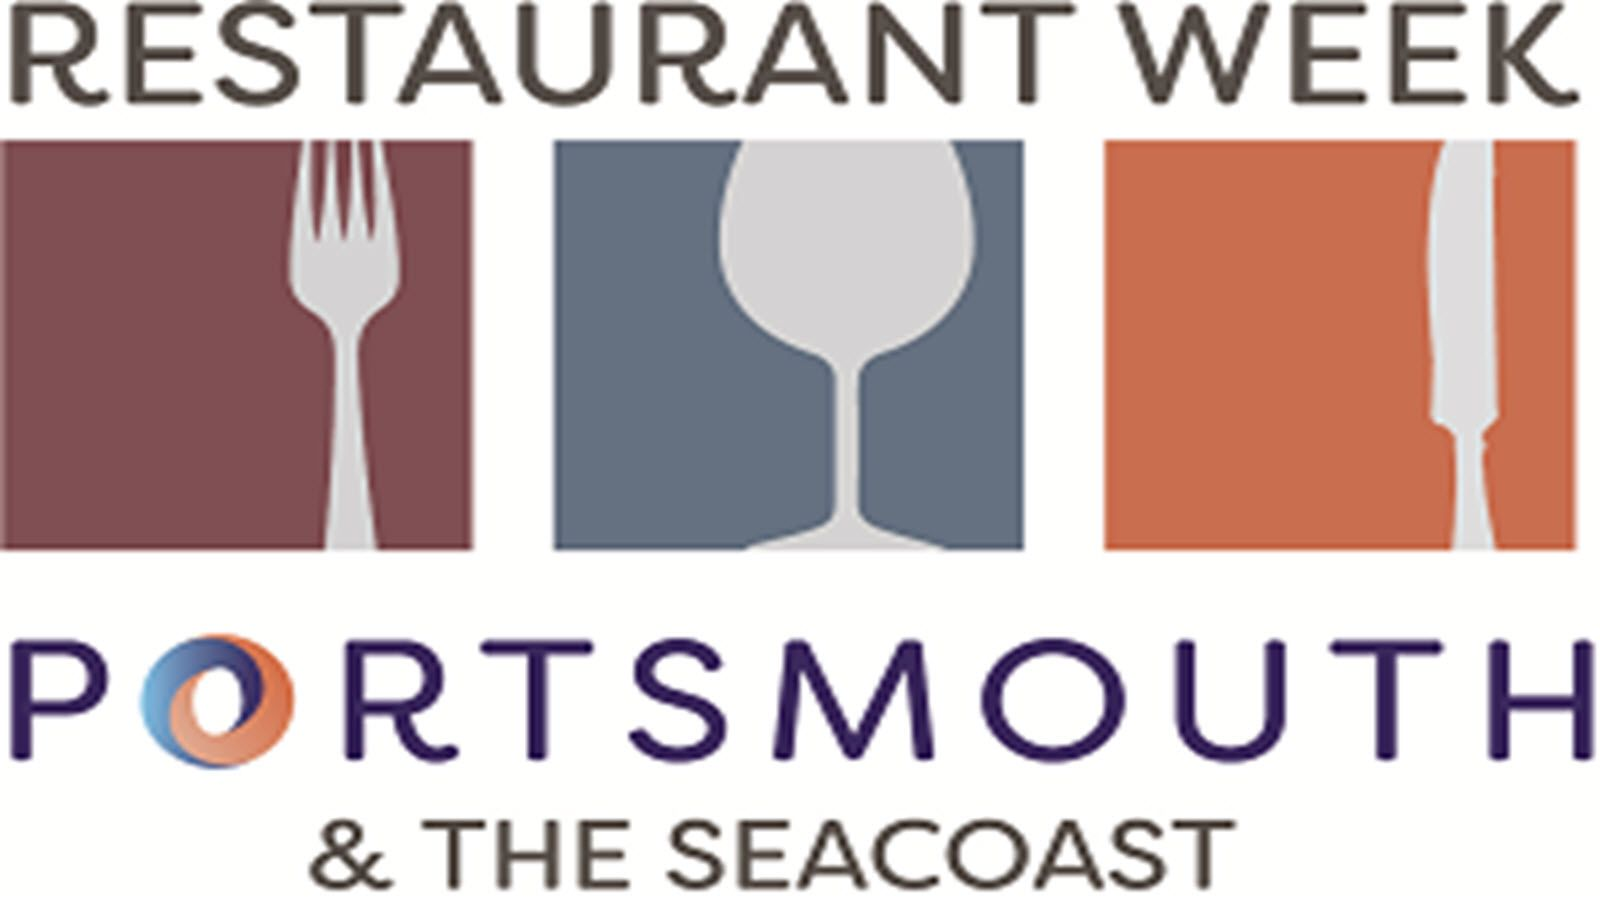 Sheraton Portsmouth Harborside Hotel - Restaurant Week November